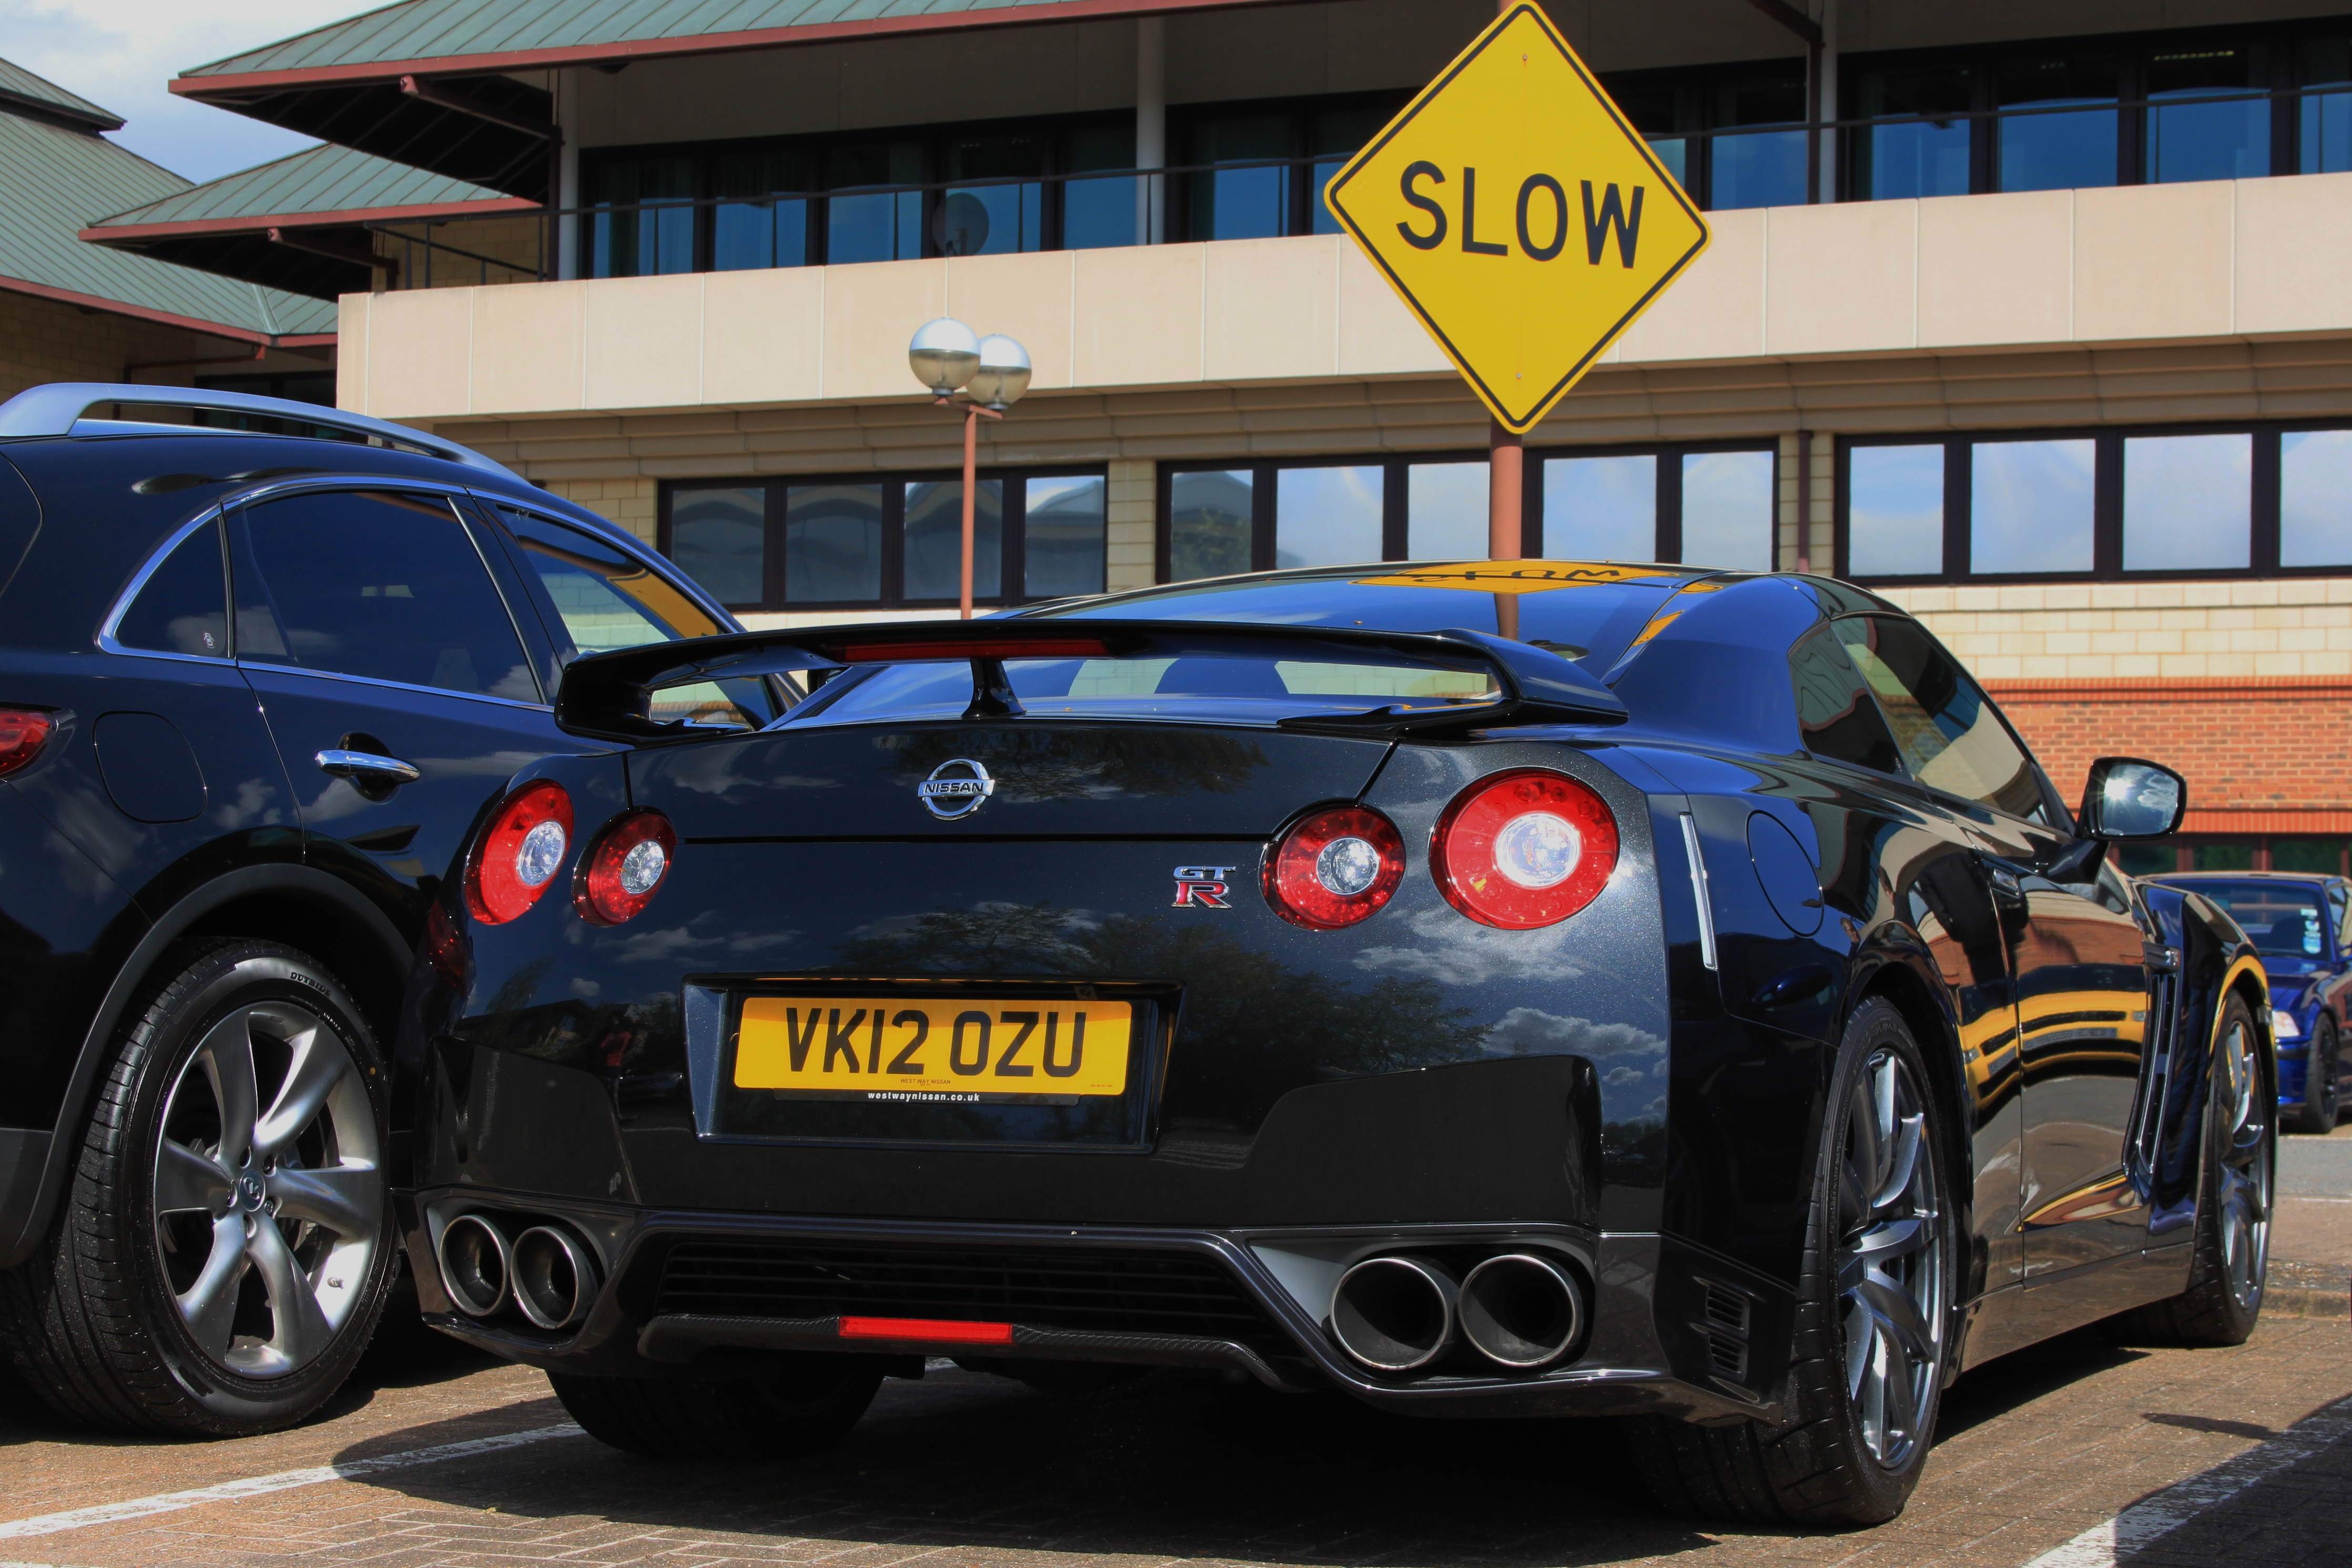 Nissan GTR 2012 R35 Black Edition Slow sign